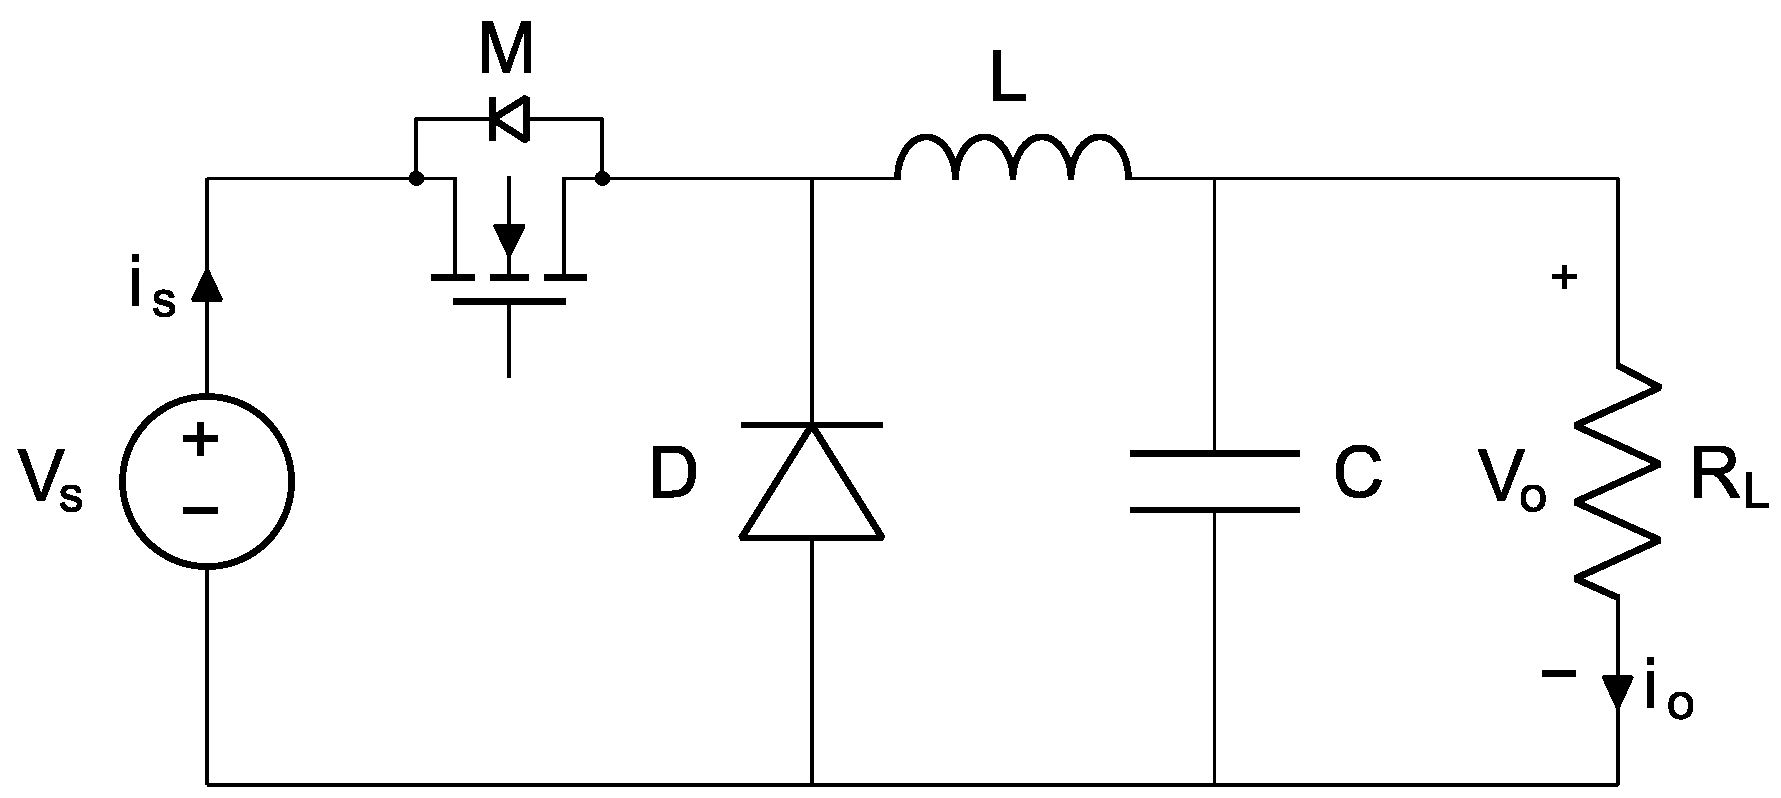 hight resolution of electronics 07 00004 g003 png